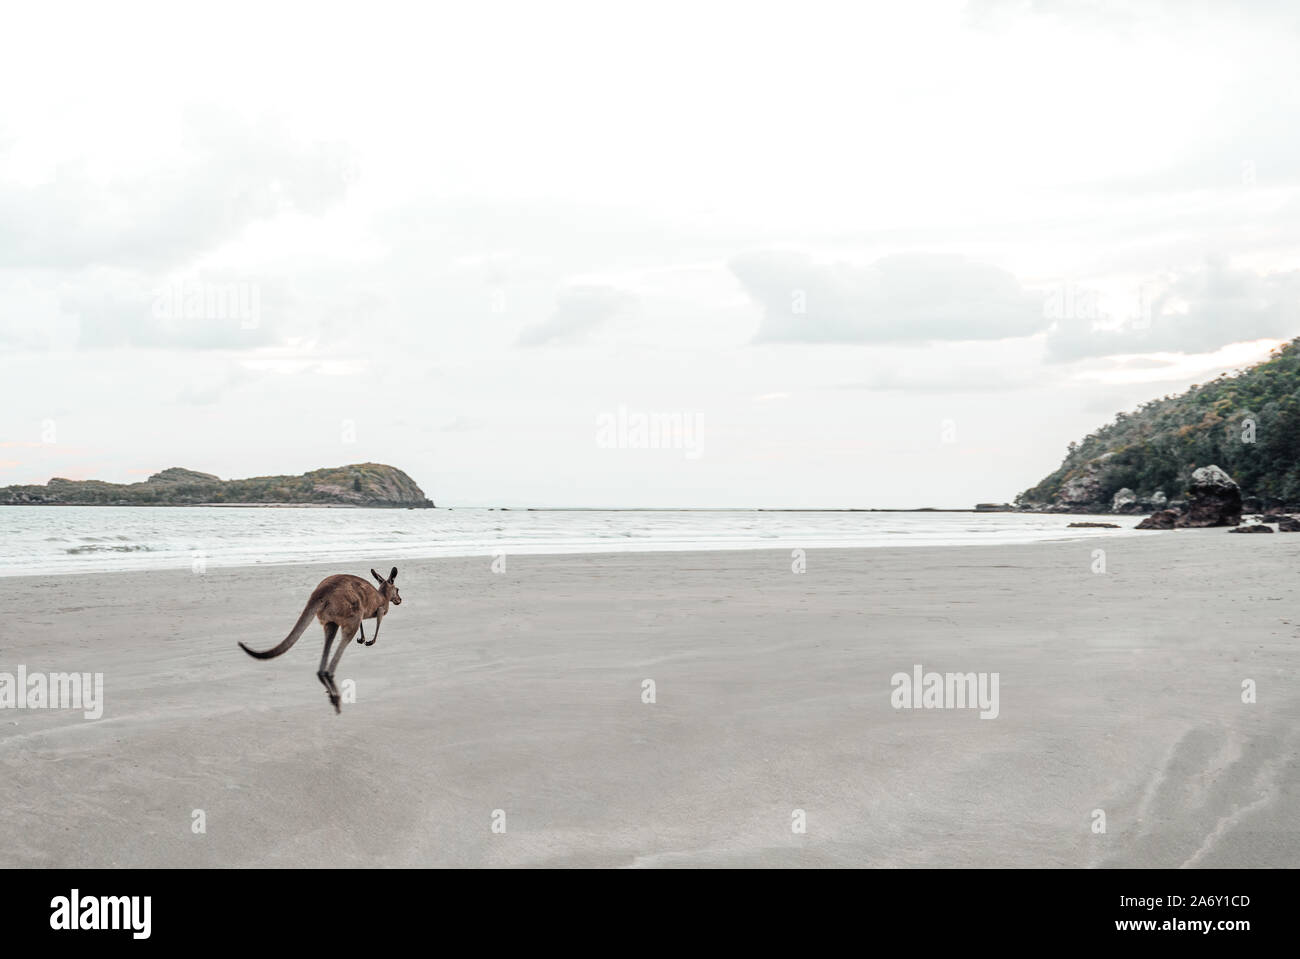 Kangaroo jumps away at the Ocean on the Beach Stock Photo